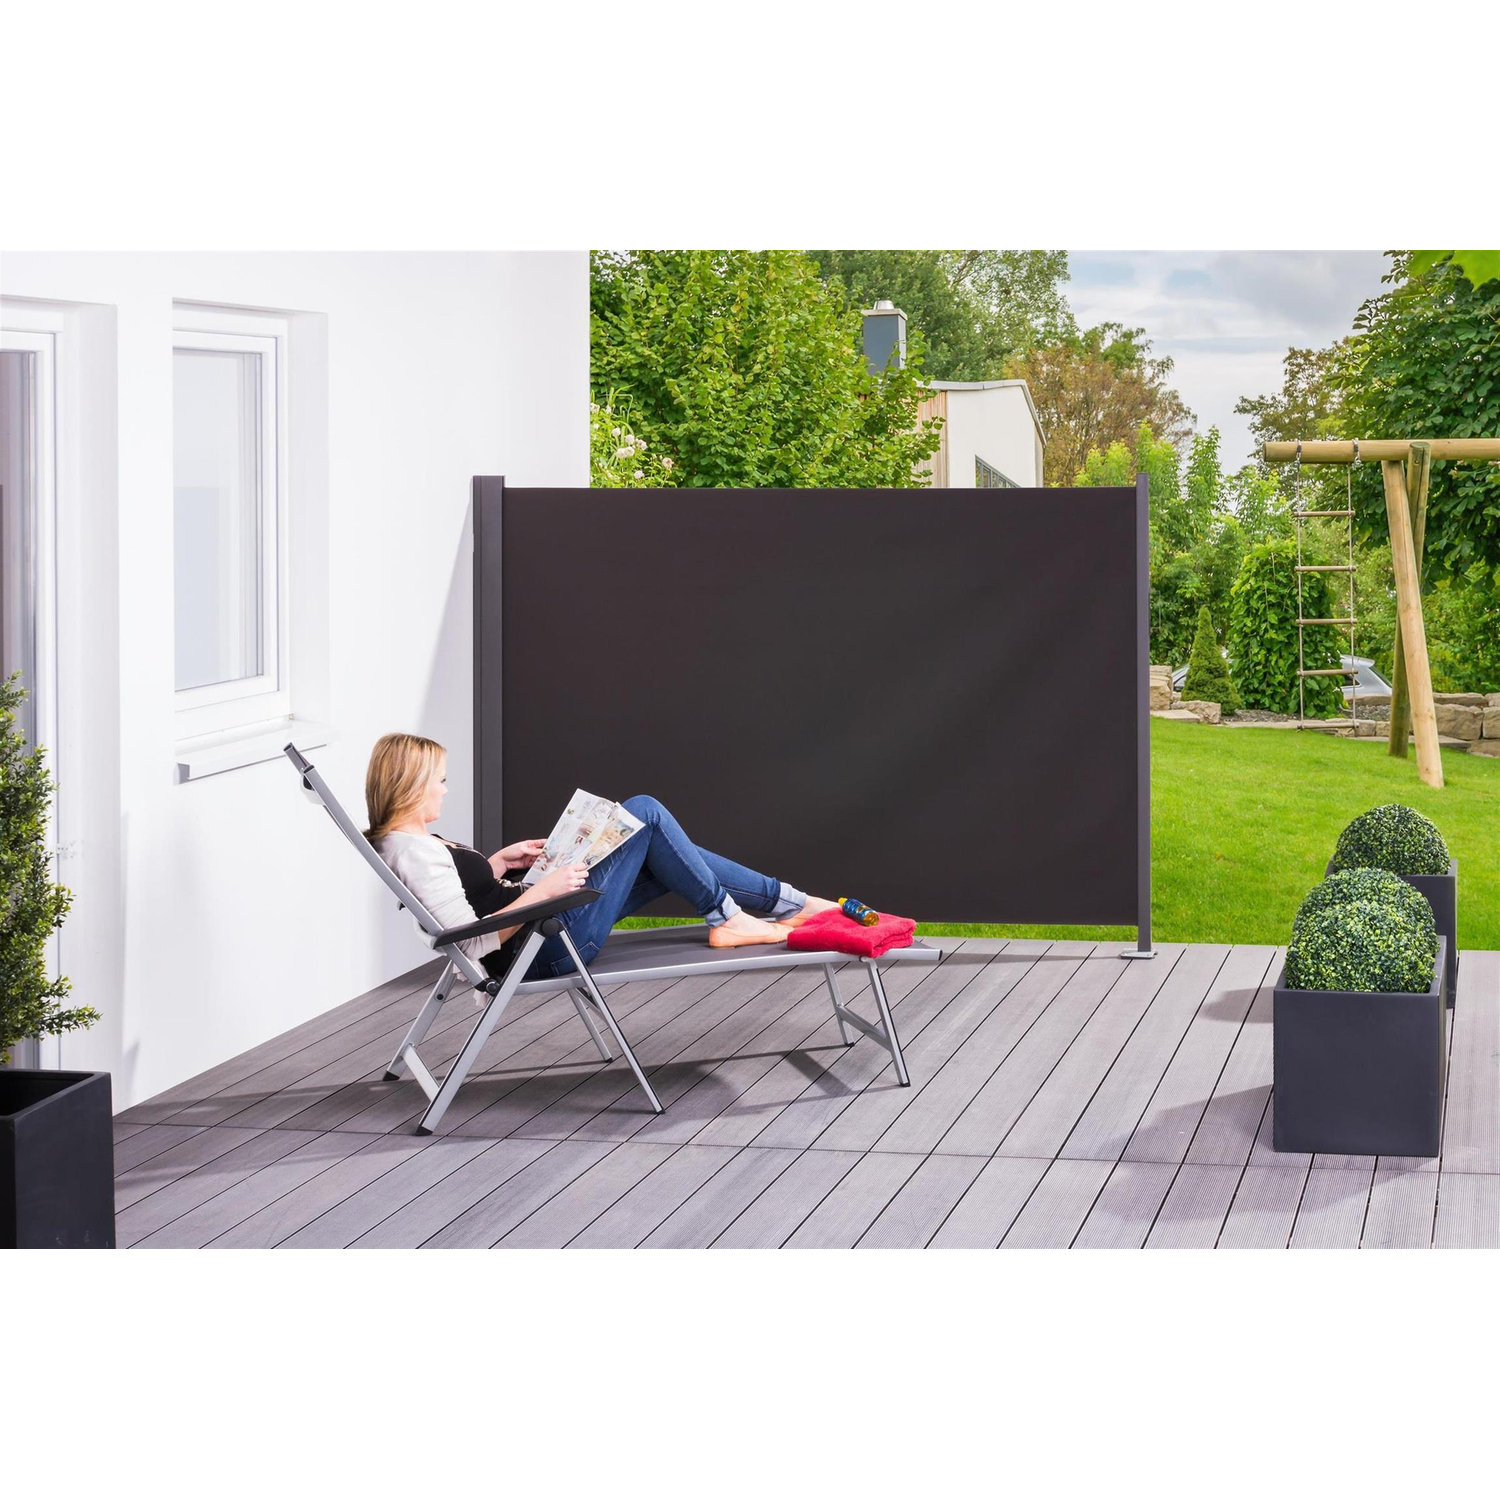 sichtschutz windschutz terrasse die neueste innovation. Black Bedroom Furniture Sets. Home Design Ideas